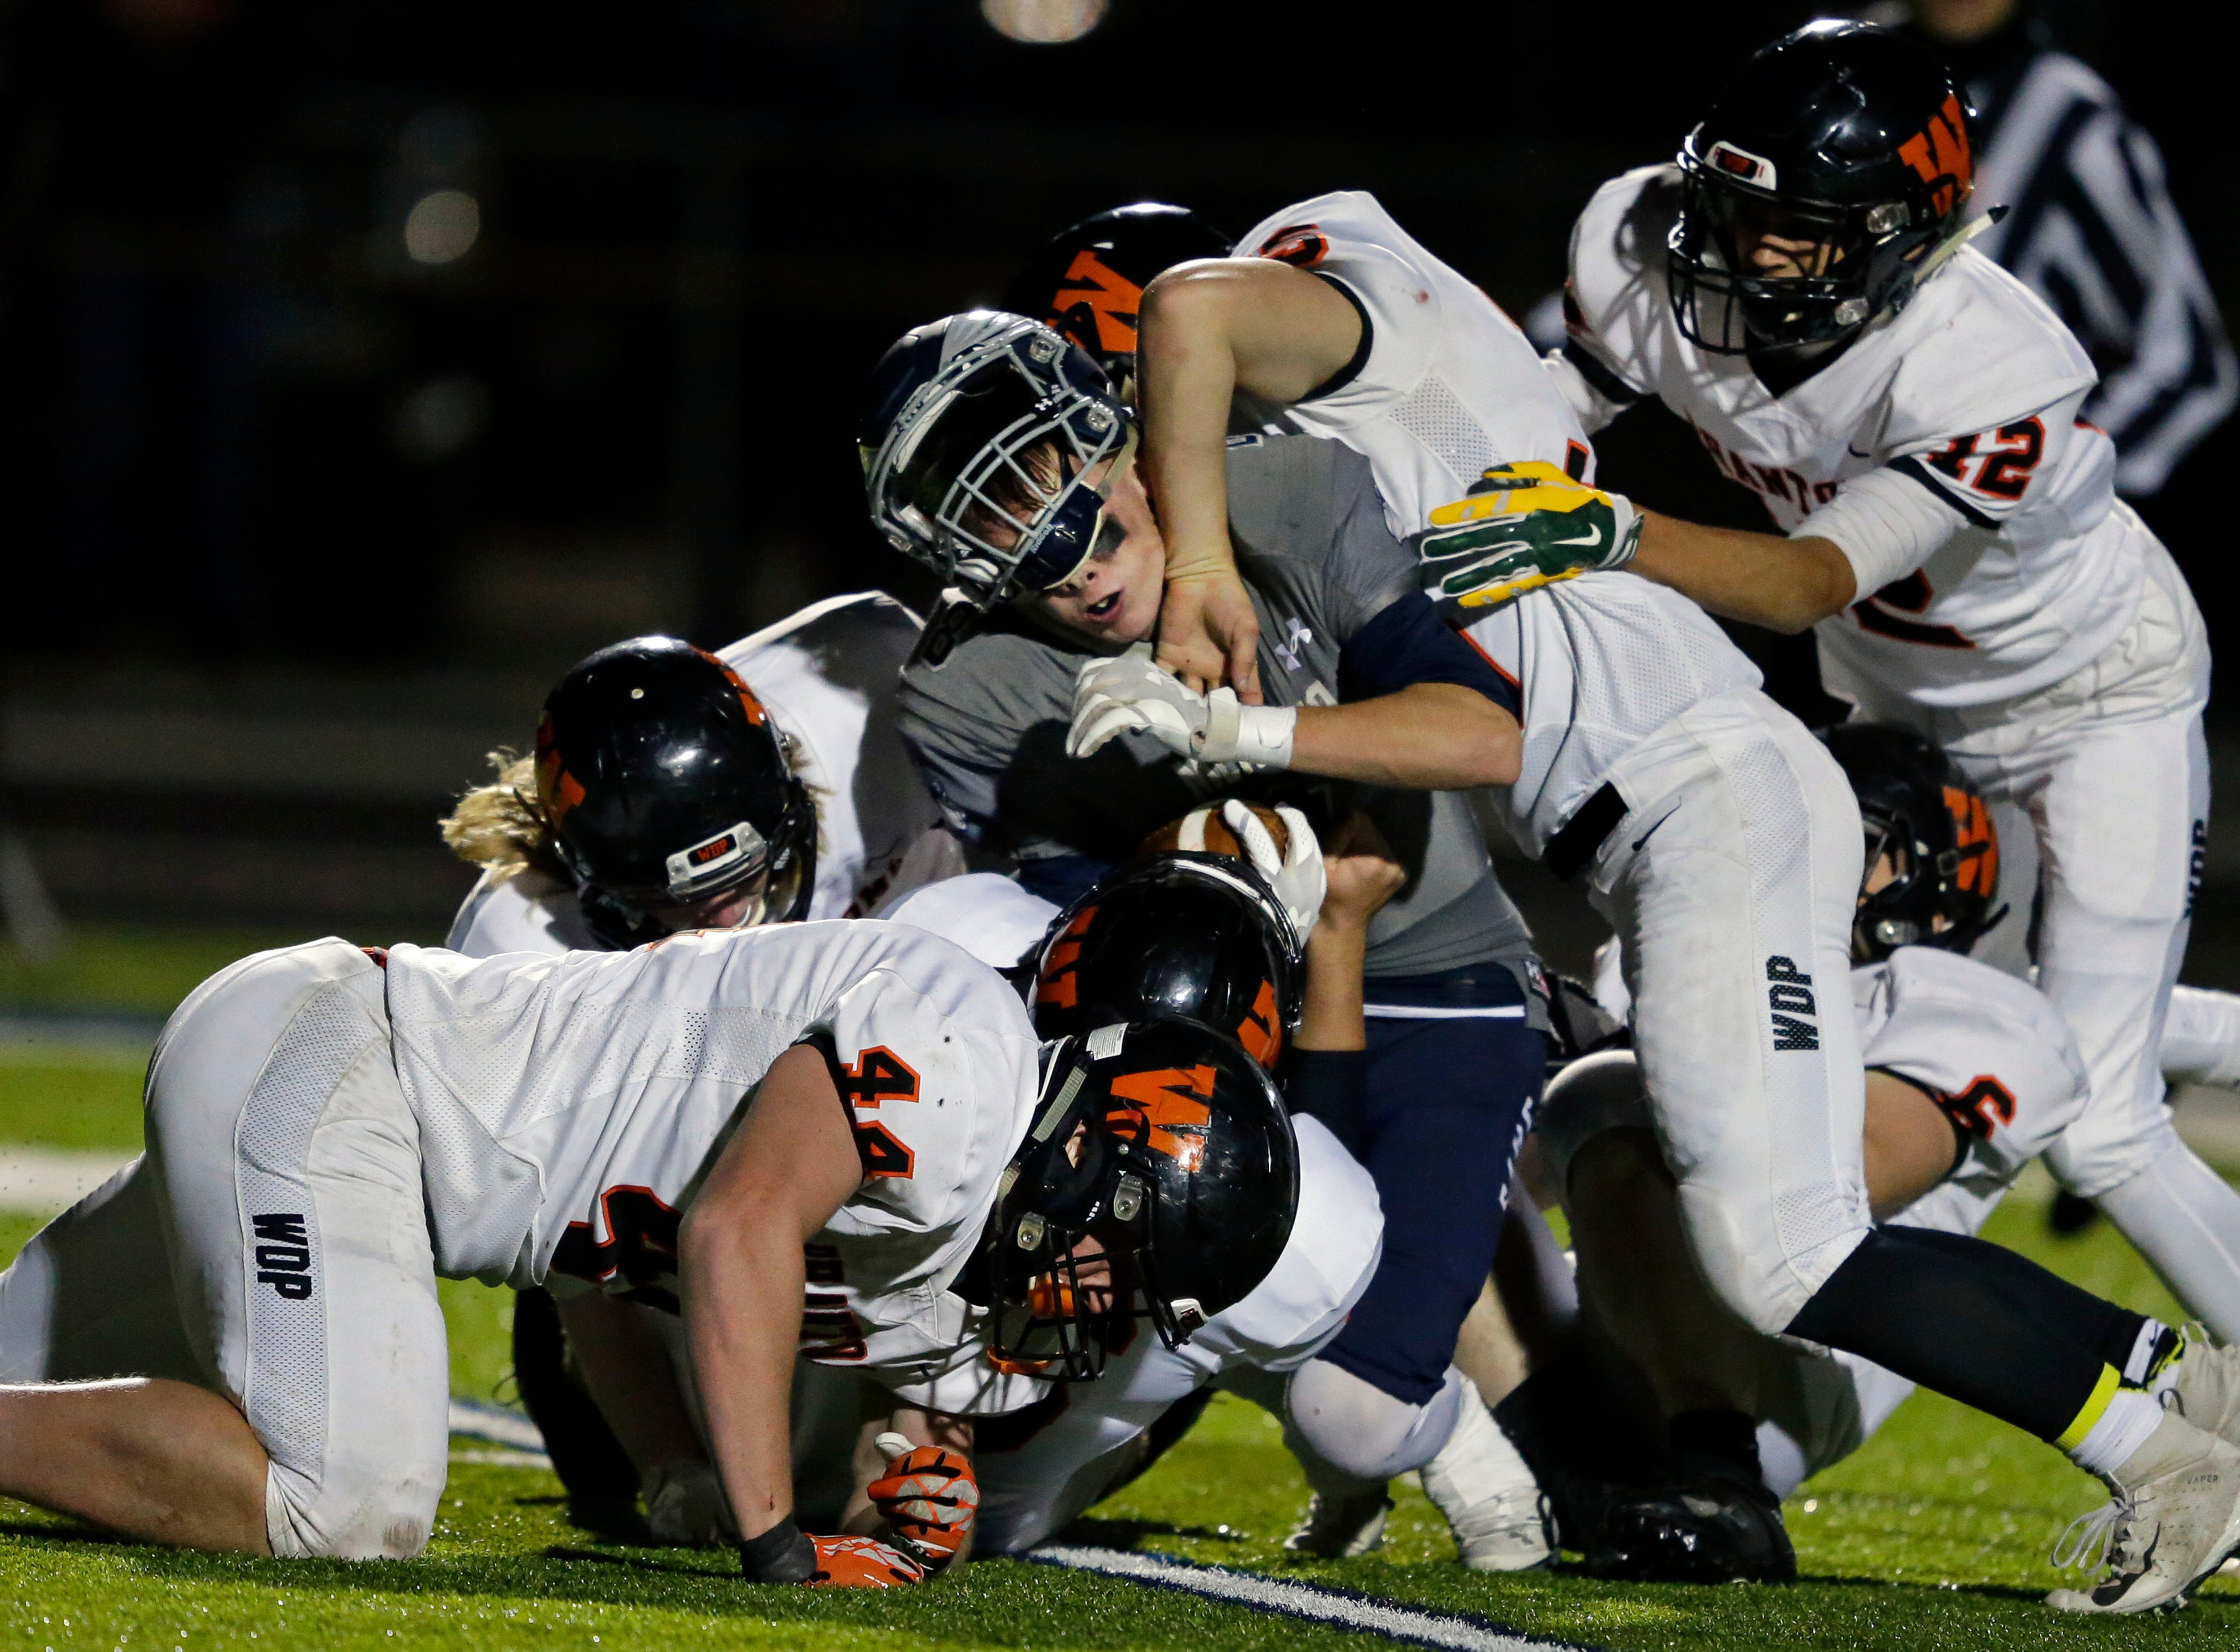 Brady Jurgella of Menasha loses his helmet as the West De Pere defense tackles him in a Bay Conference football game Friday, September 28, 2018, at Calder Stadium in Menasha, Wis.